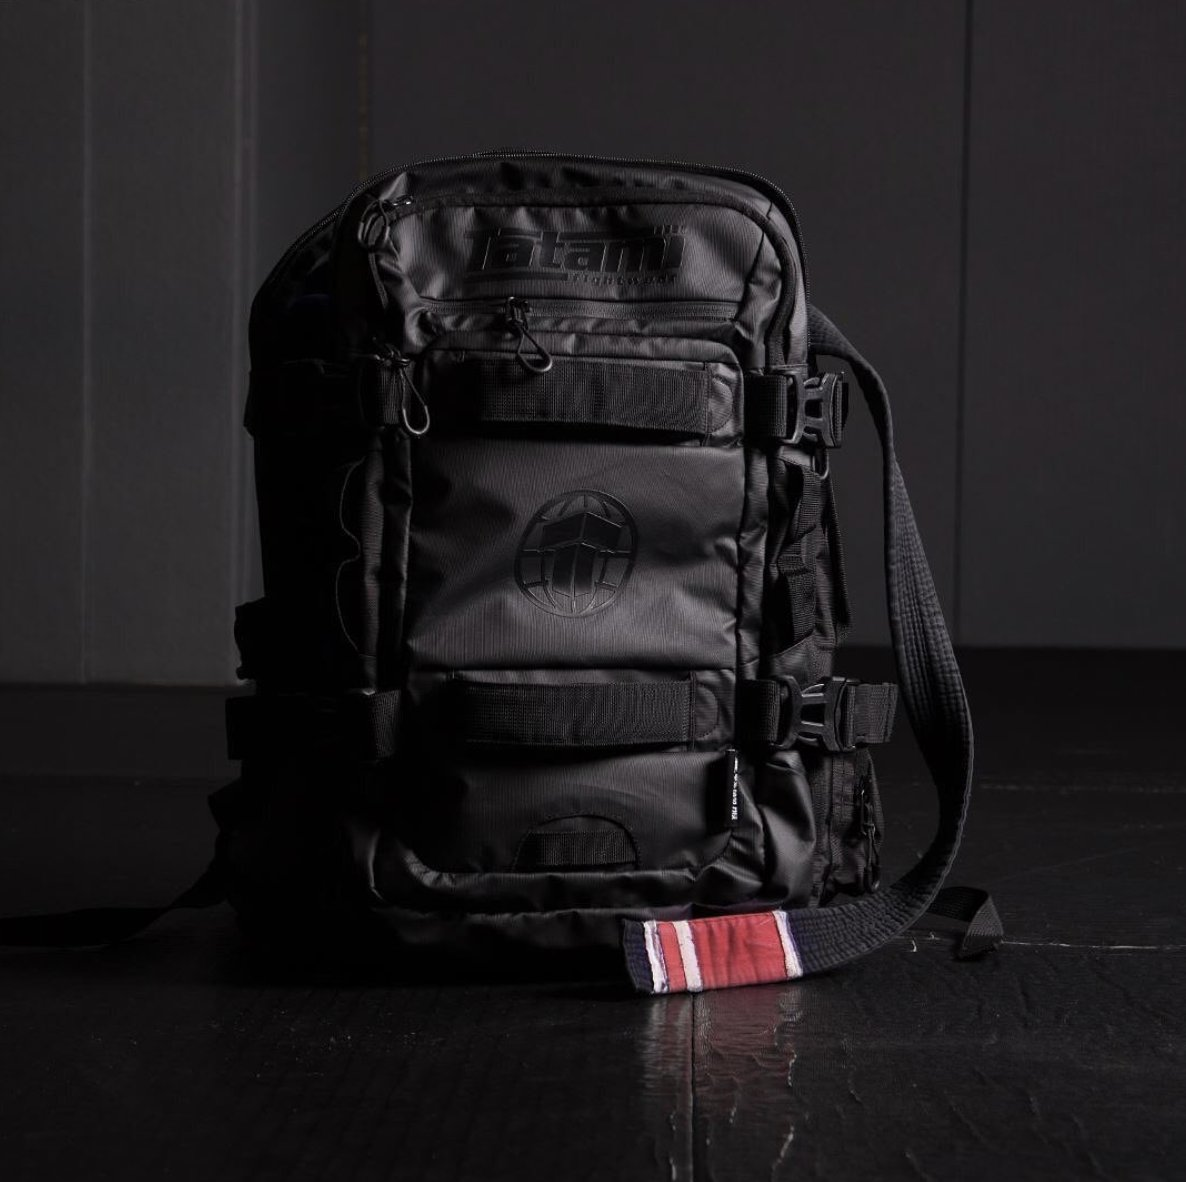 Our bag restock includes the ever popular Omega back pack - available again now: https://t.co/BQWI4VVjXC https://t.co/EwUyiuJRad